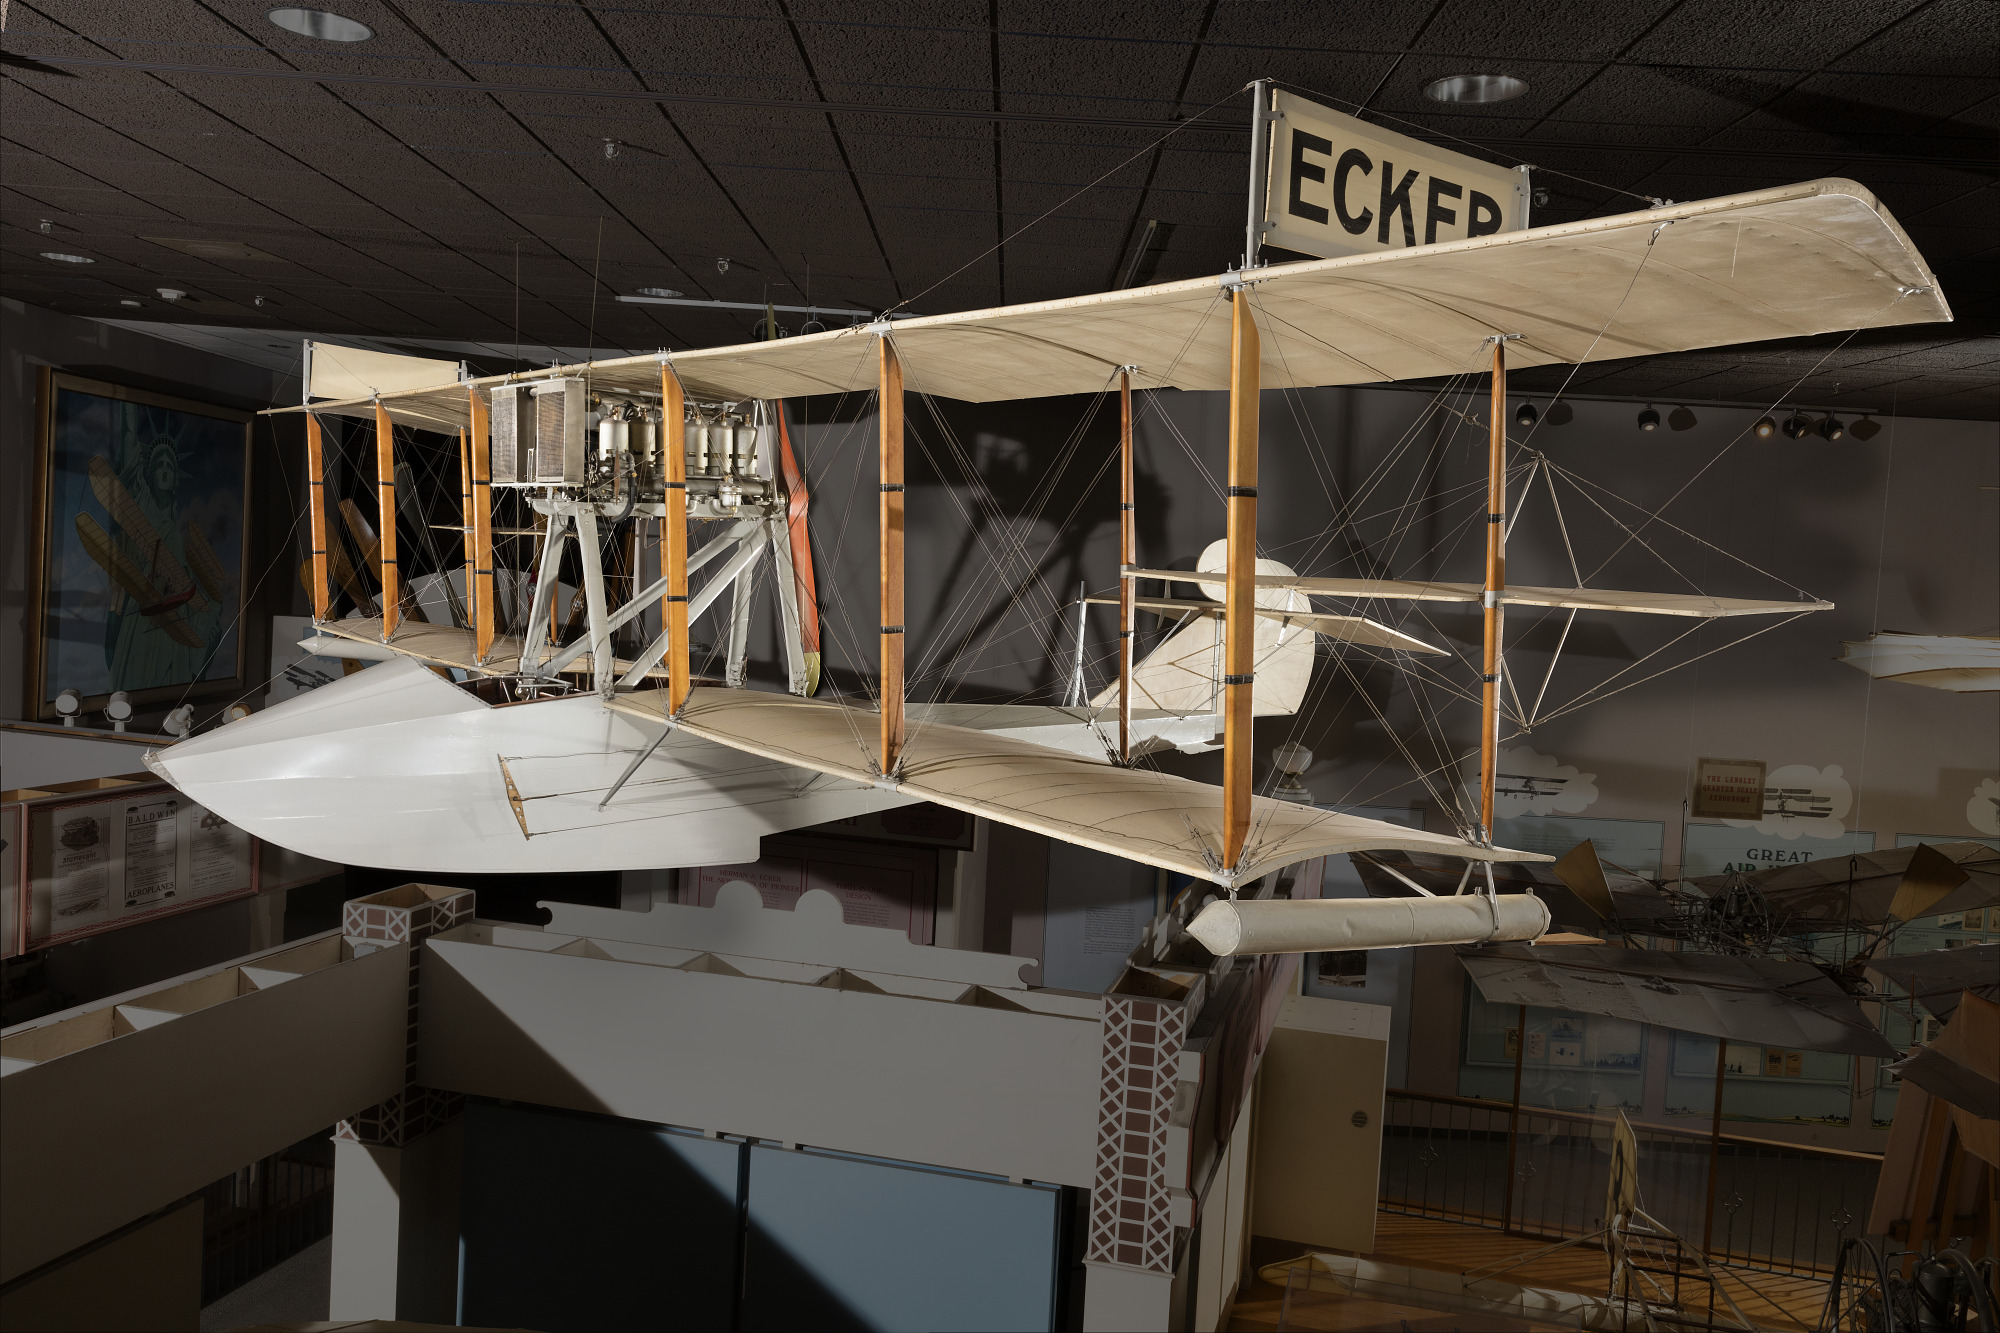 Ecker Flying Boat | National Air and Space Museum